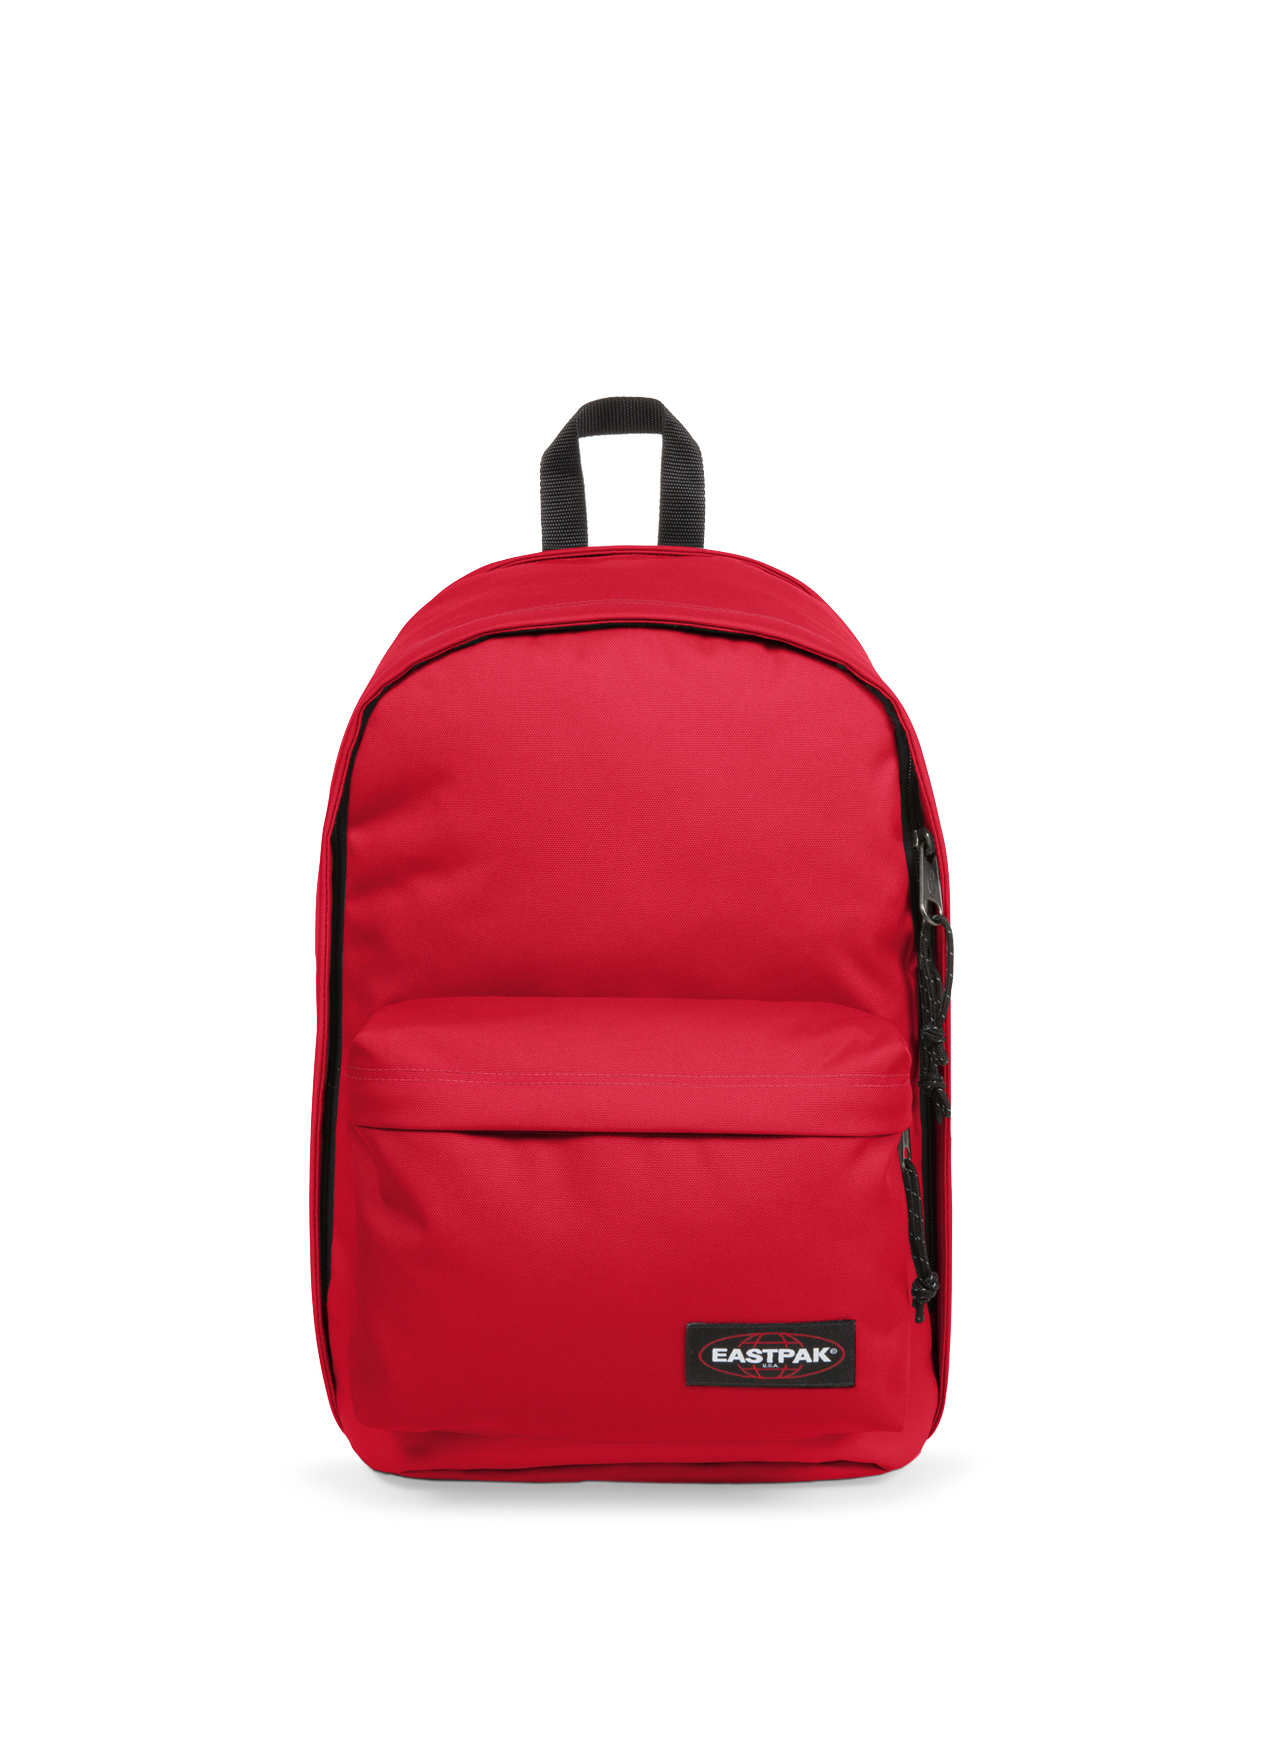 19576f99e7a1b Buy Original Eastpak Back to Work Chuppachop Red Backpack at ...